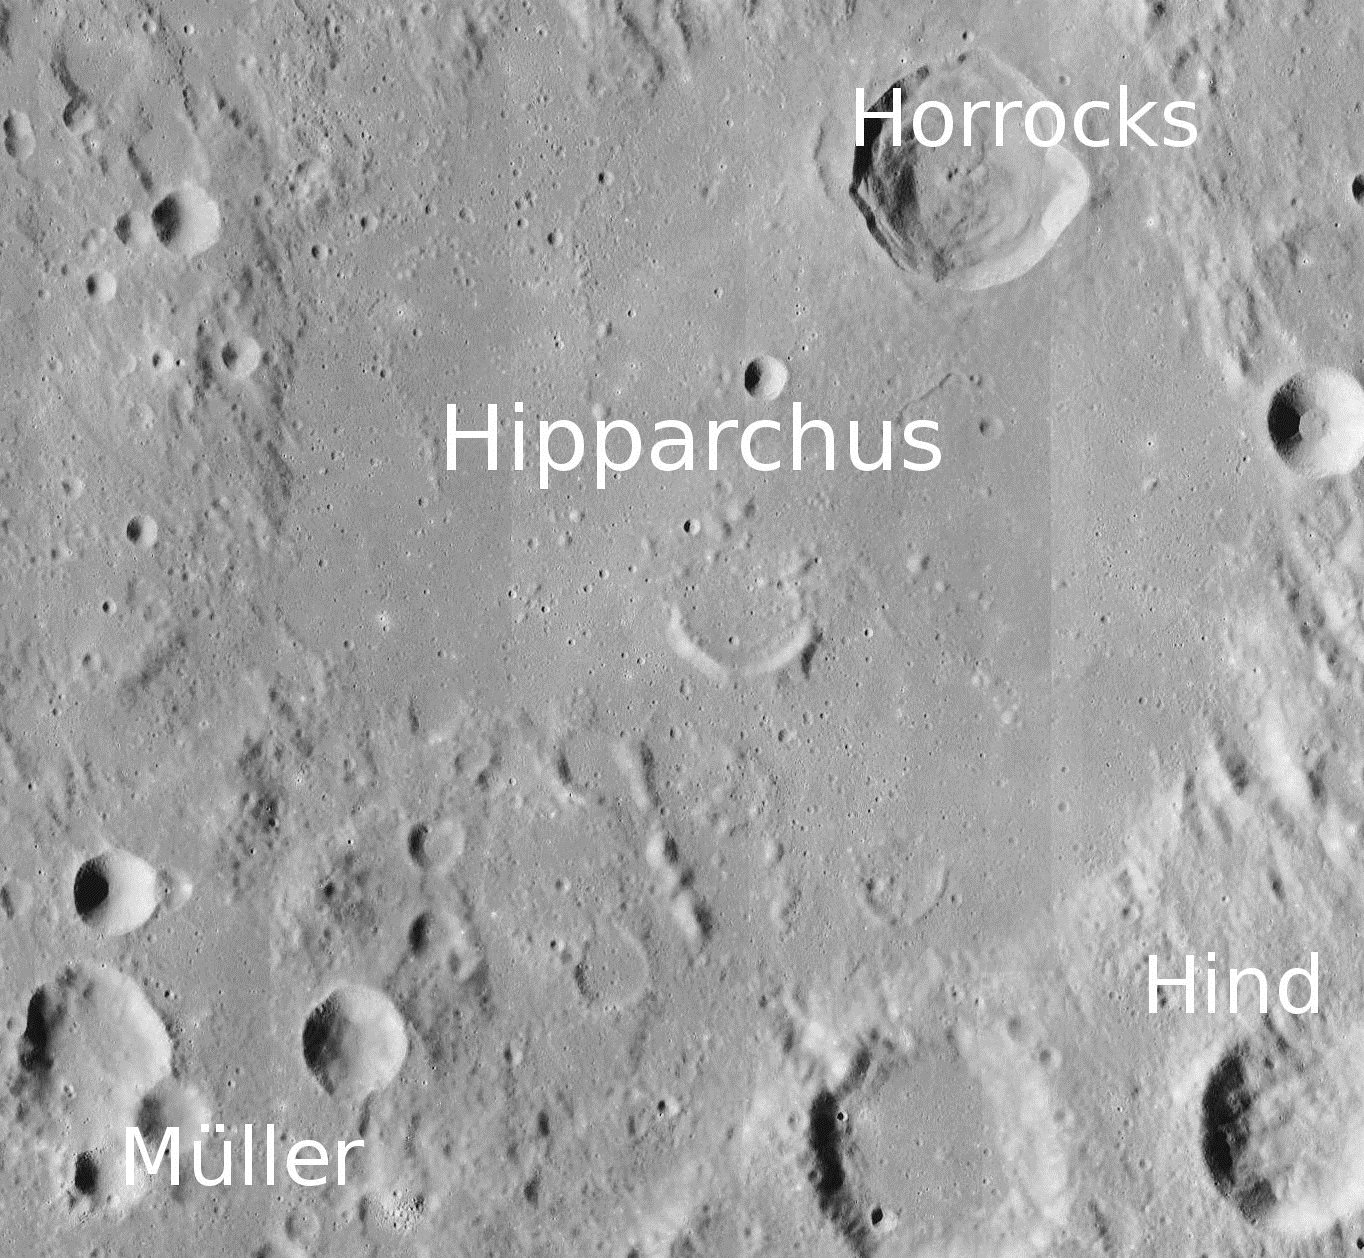 Hipparchus at full phase